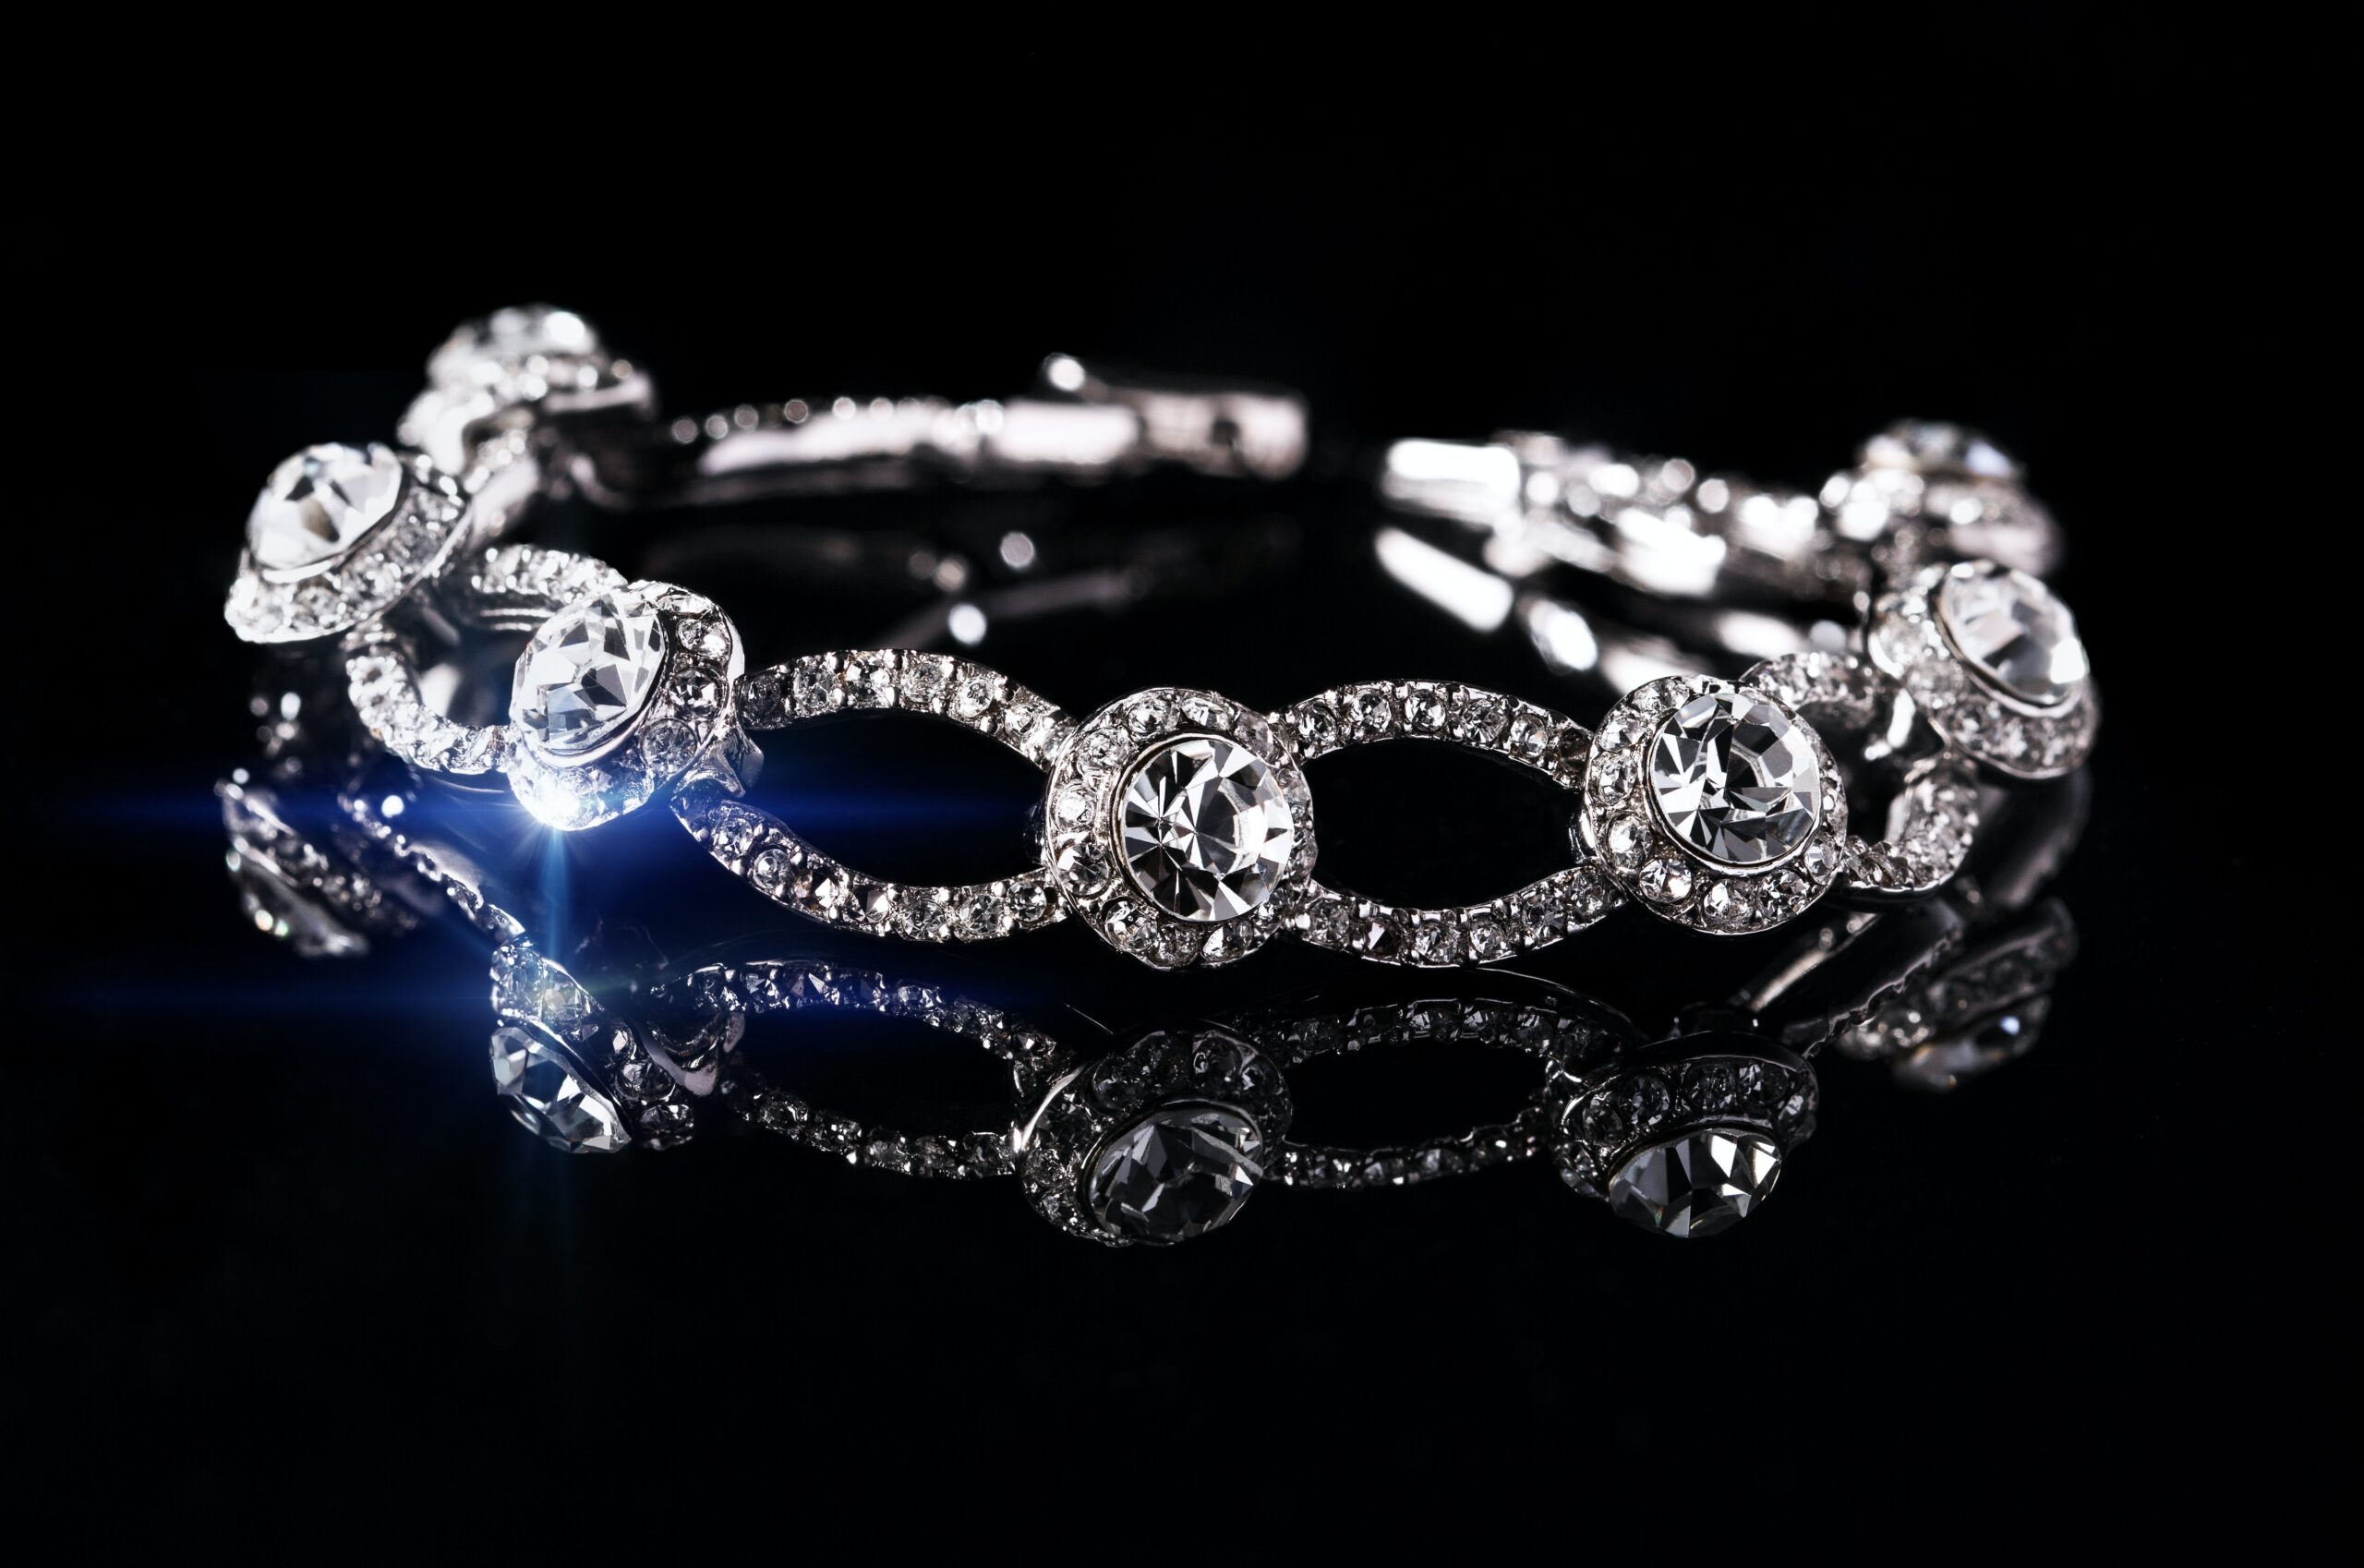 How To Take Care Of Your Jewellery, Jewelry